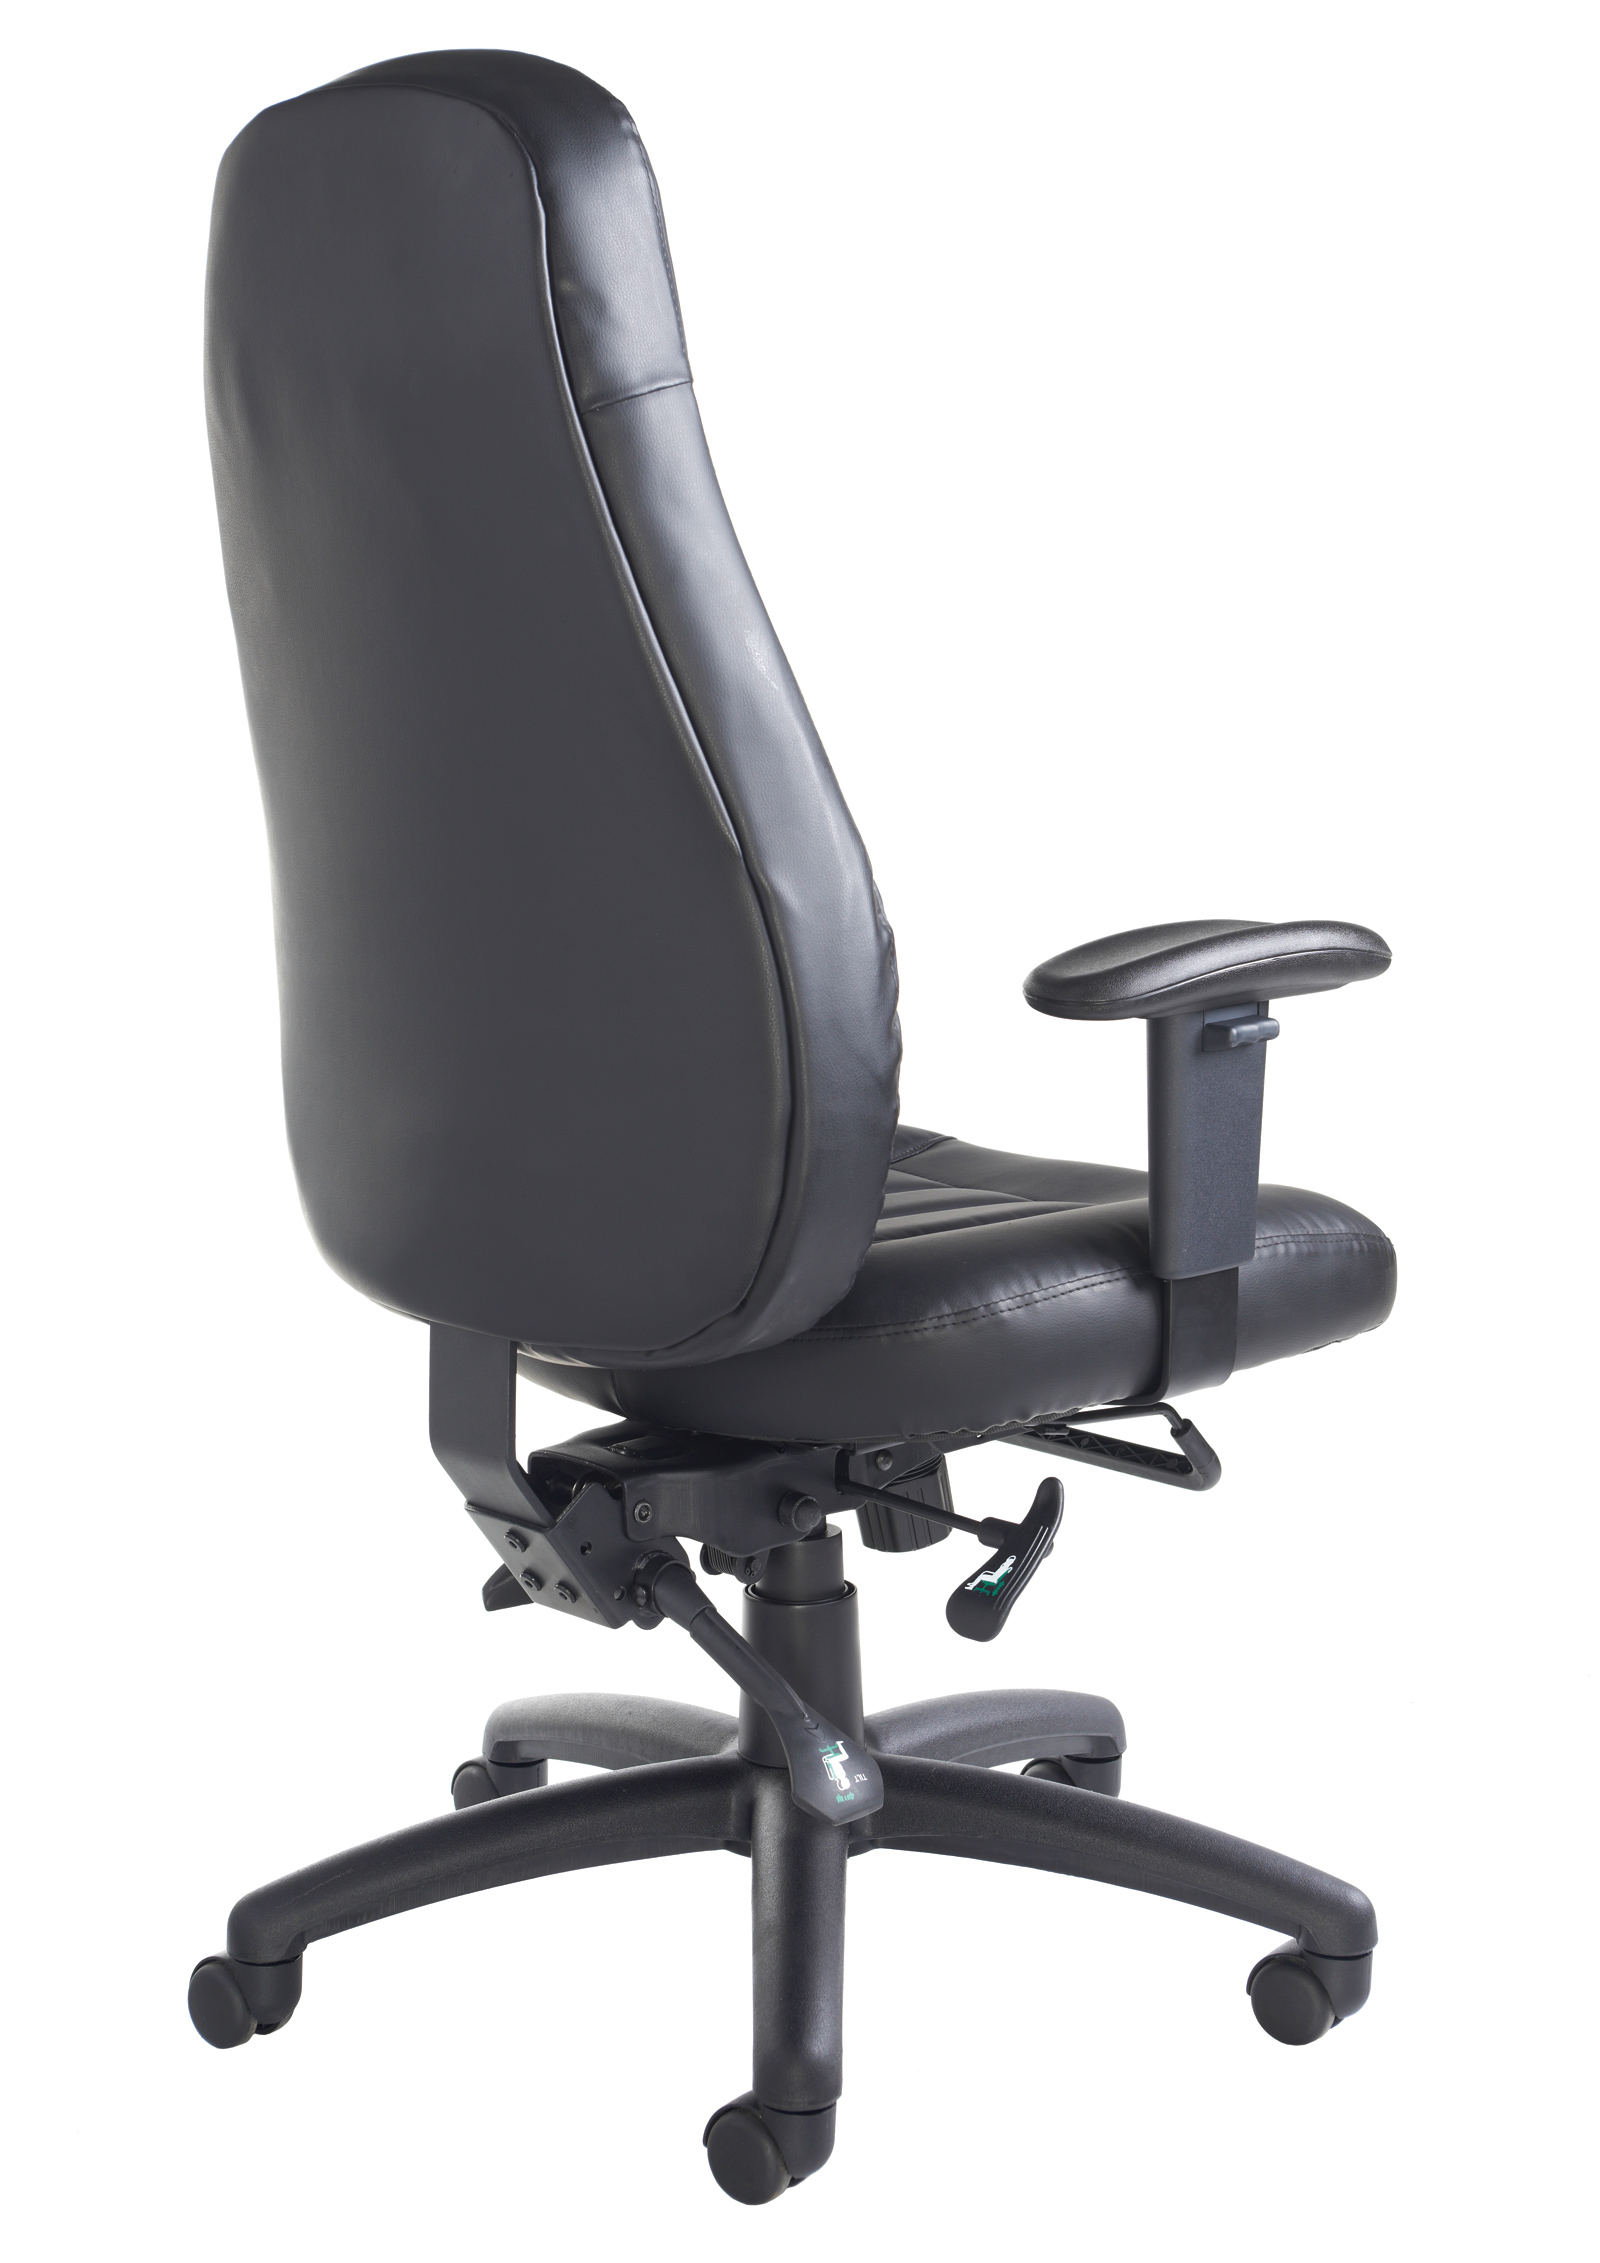 24 Hour Office Chairs Zeus Leather Office Chair 24 Hour Use Chair